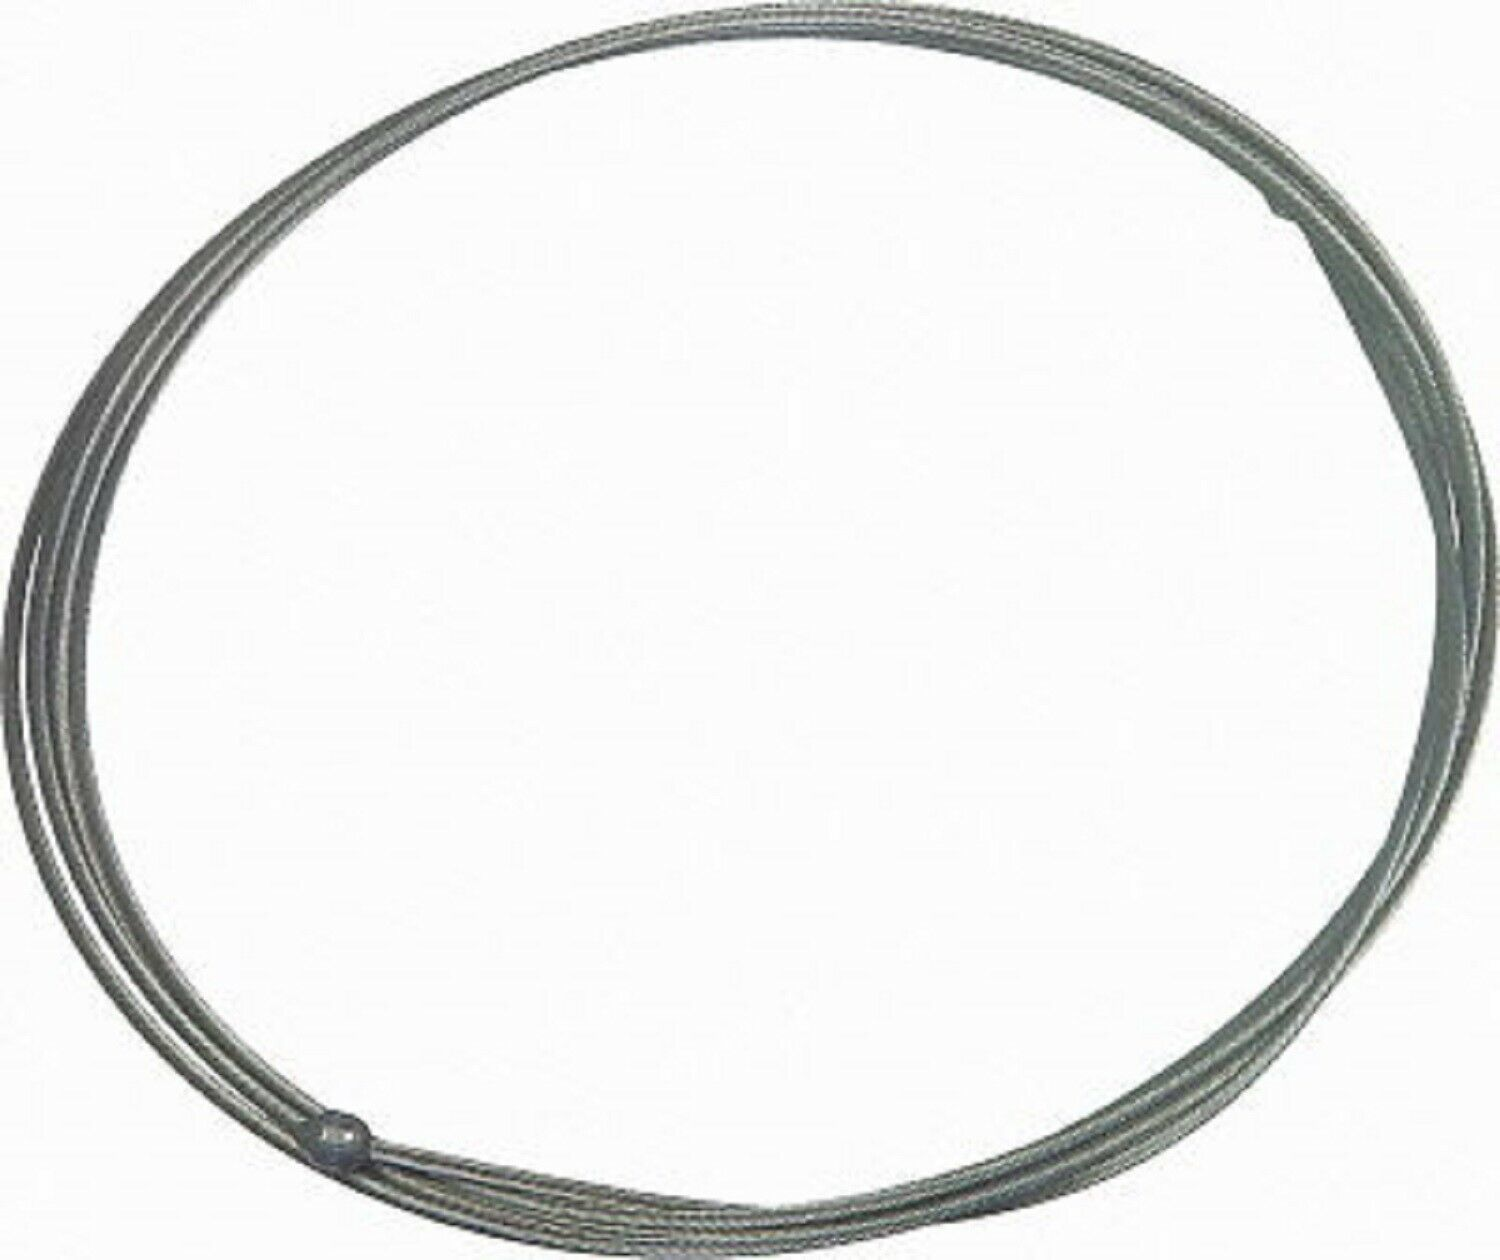 New Wagner F Bc Parking Brake Cable Fits Fits Gmc P